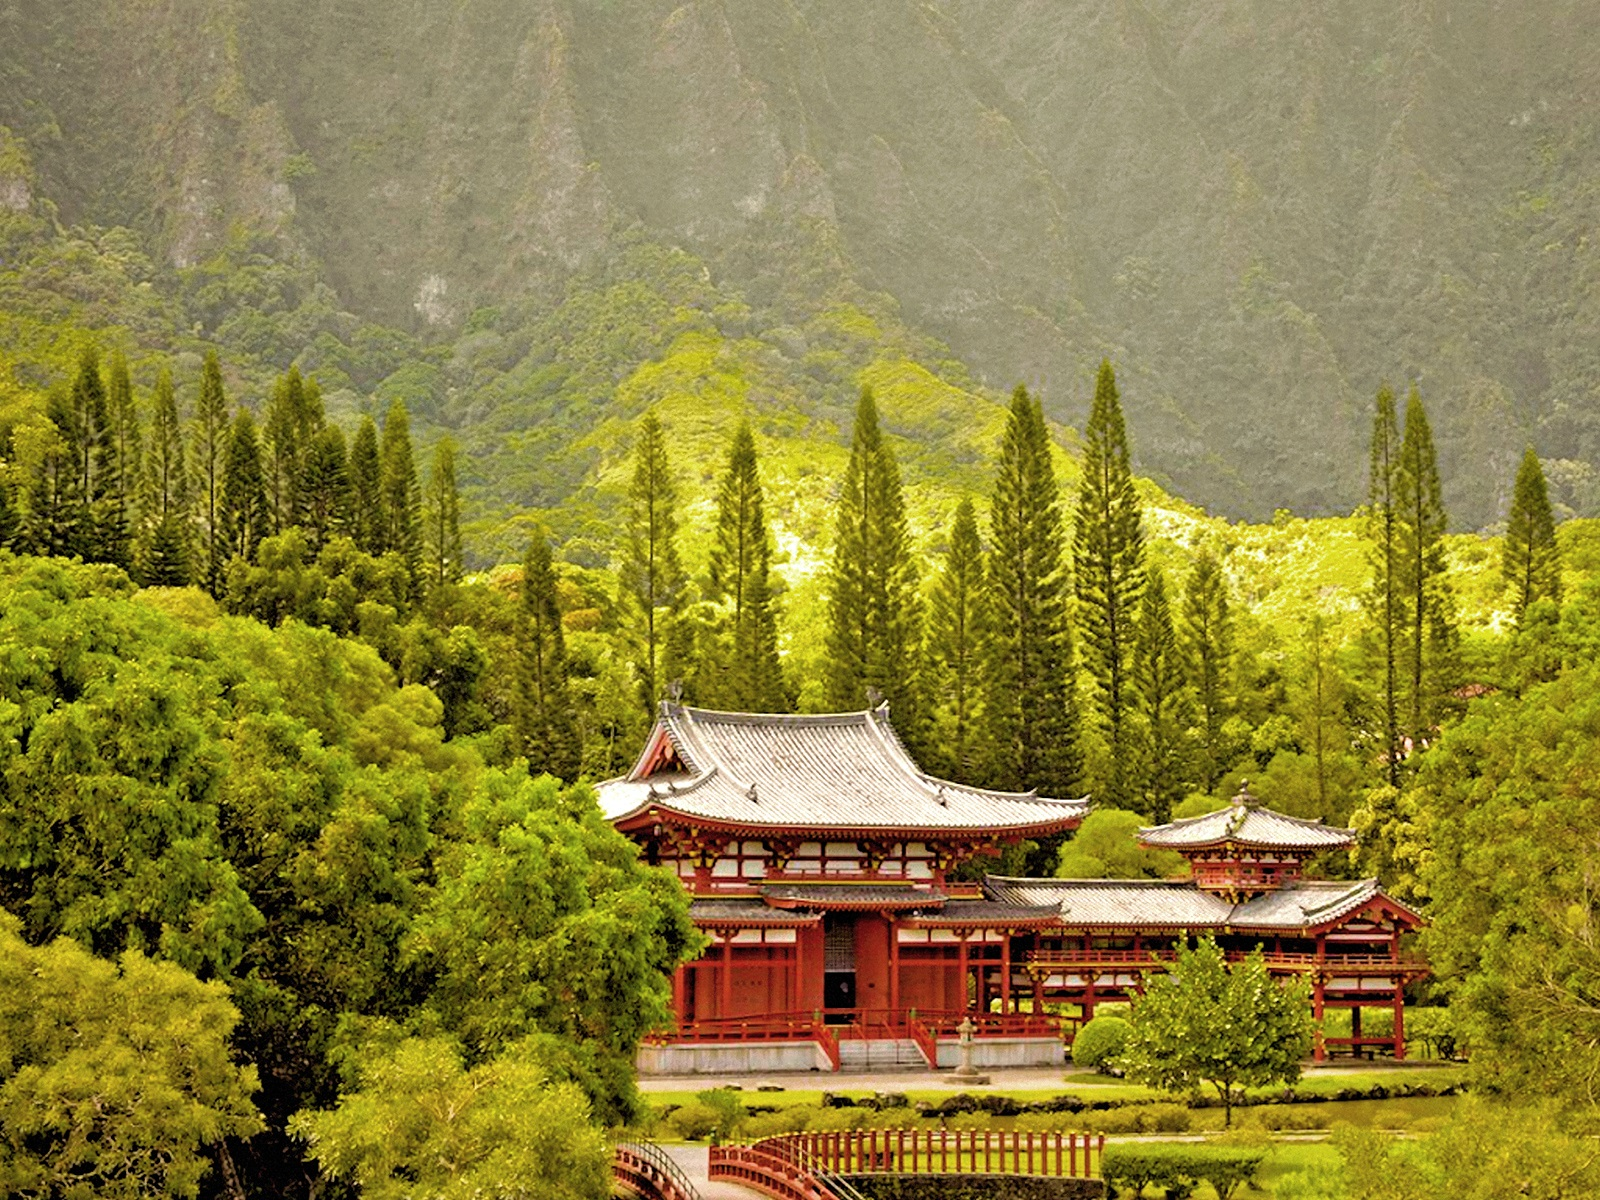 00 Byodo-In Temple, Oahu, Hawaii. 180716